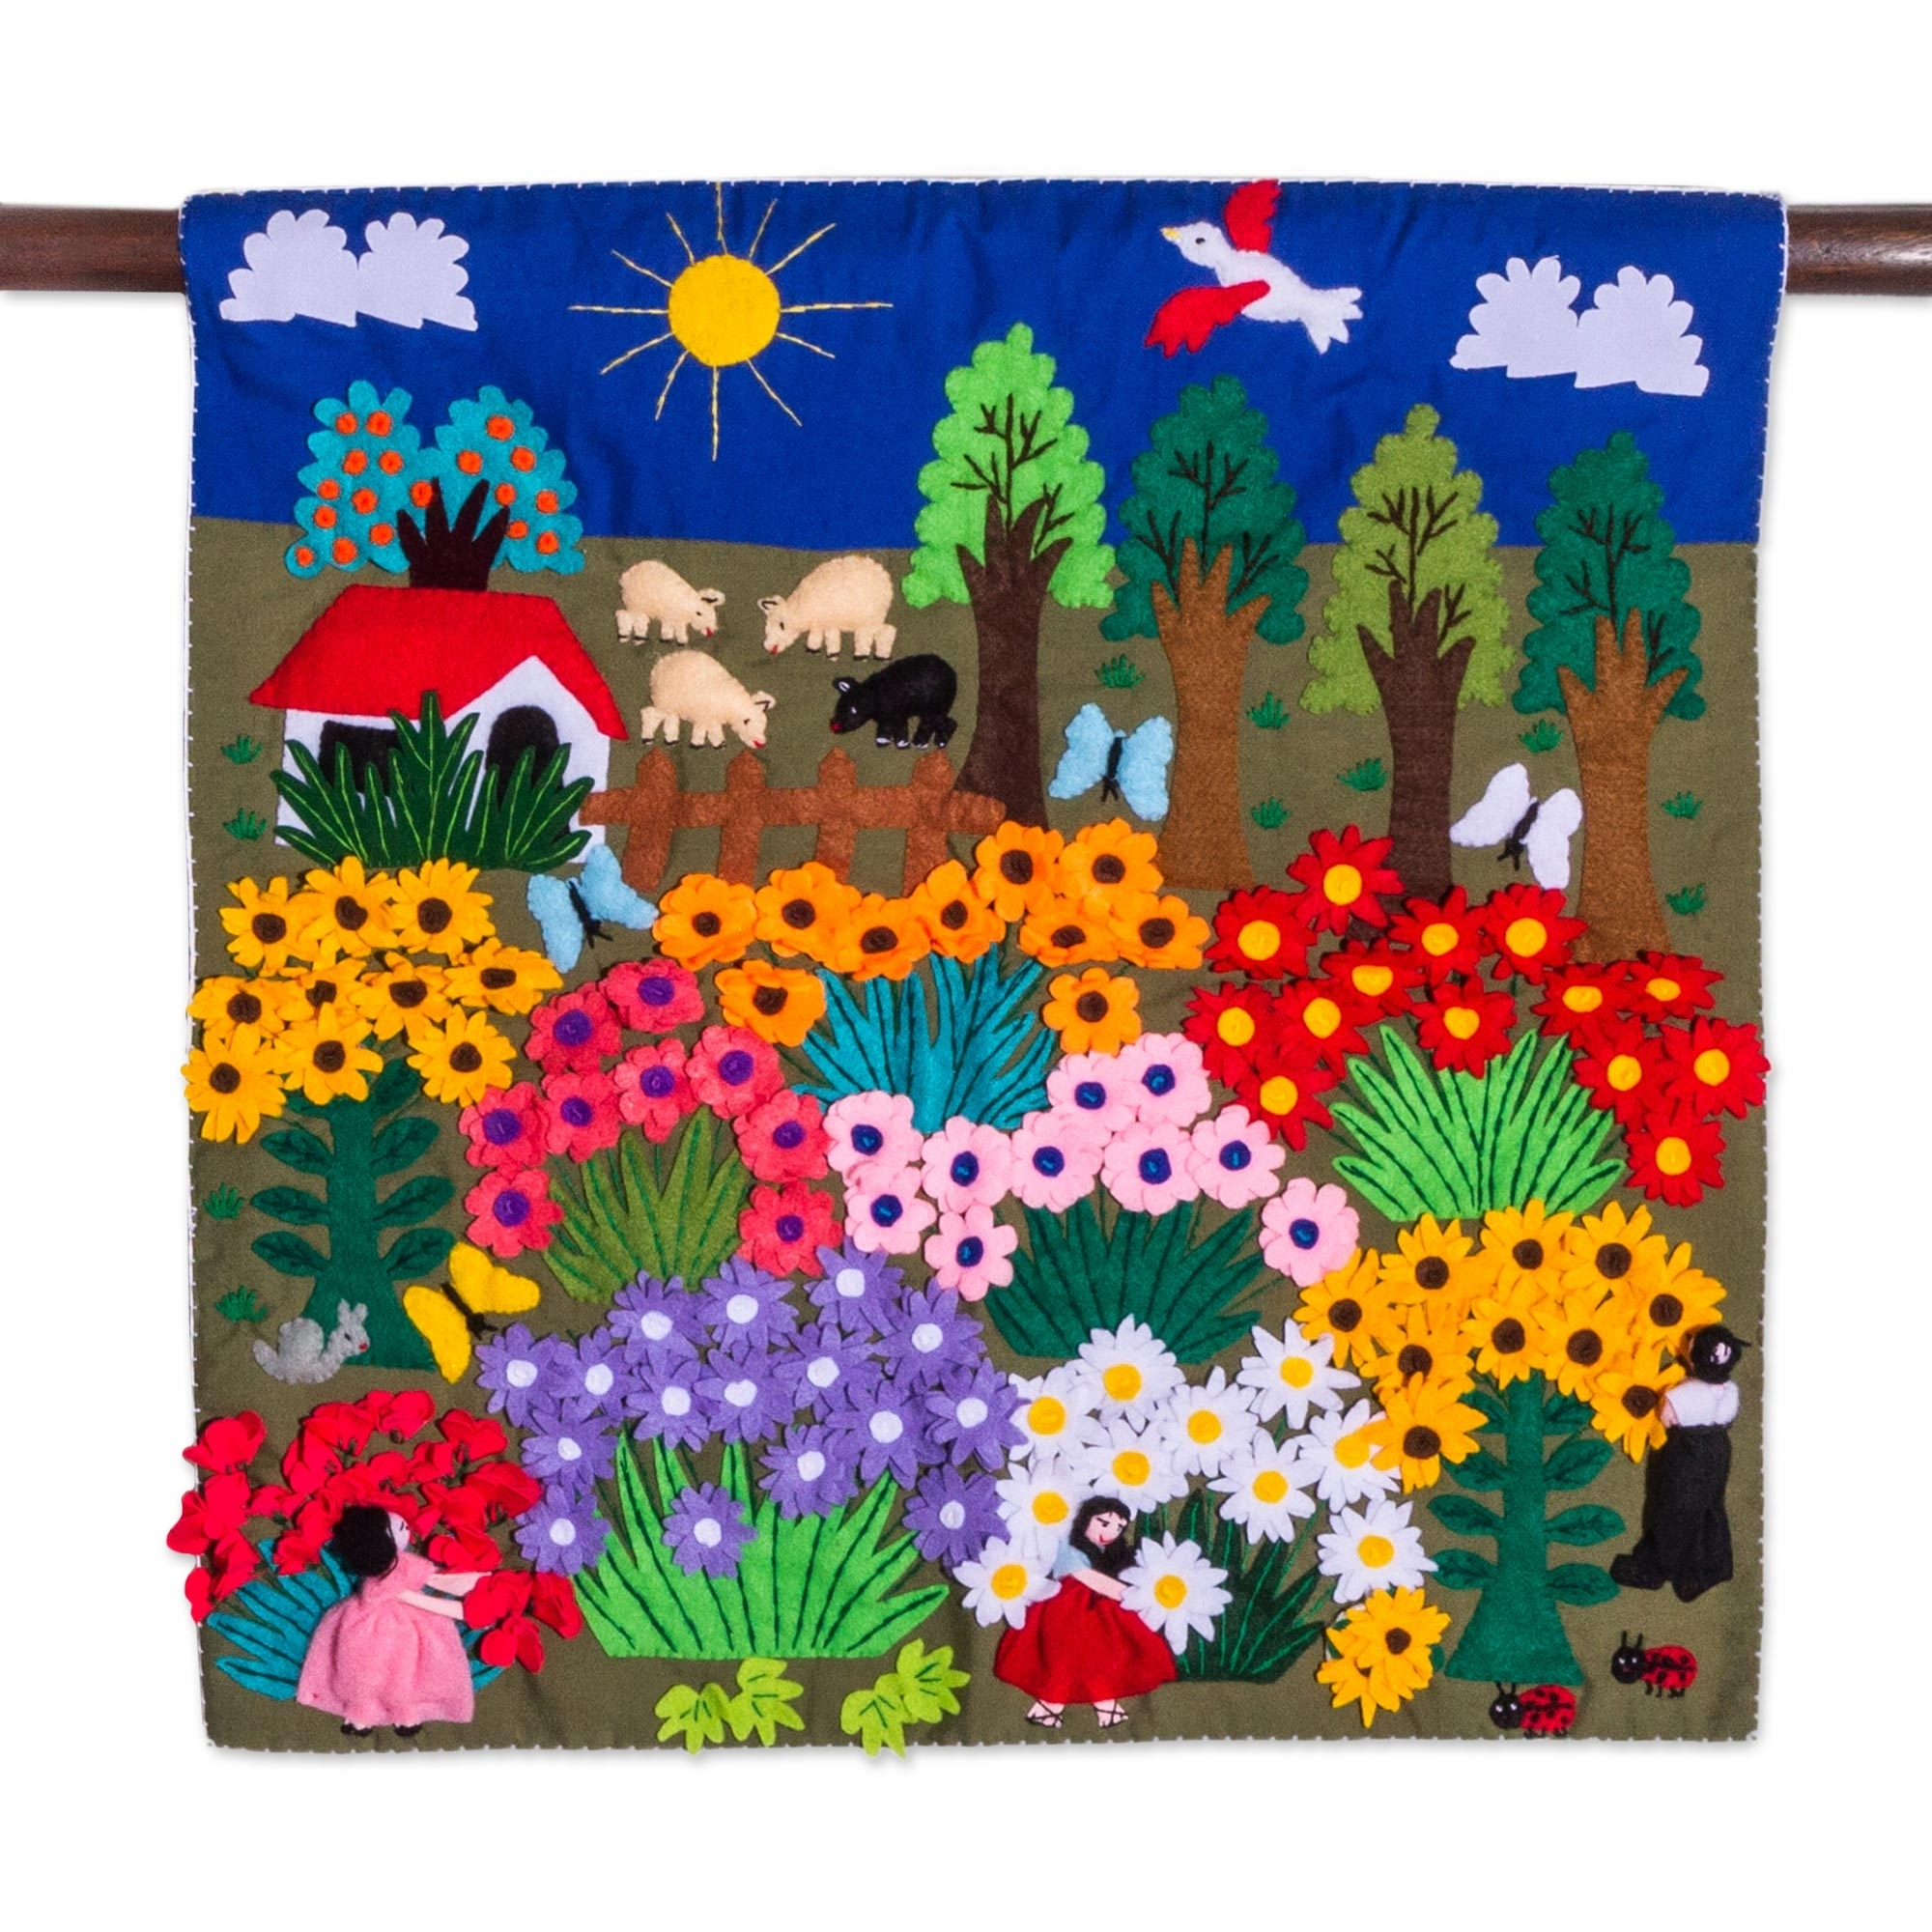 Wall Hangings Offer A Great Variety Of Decor Options For Recent Fabric Applique Wall Art (View 14 of 15)